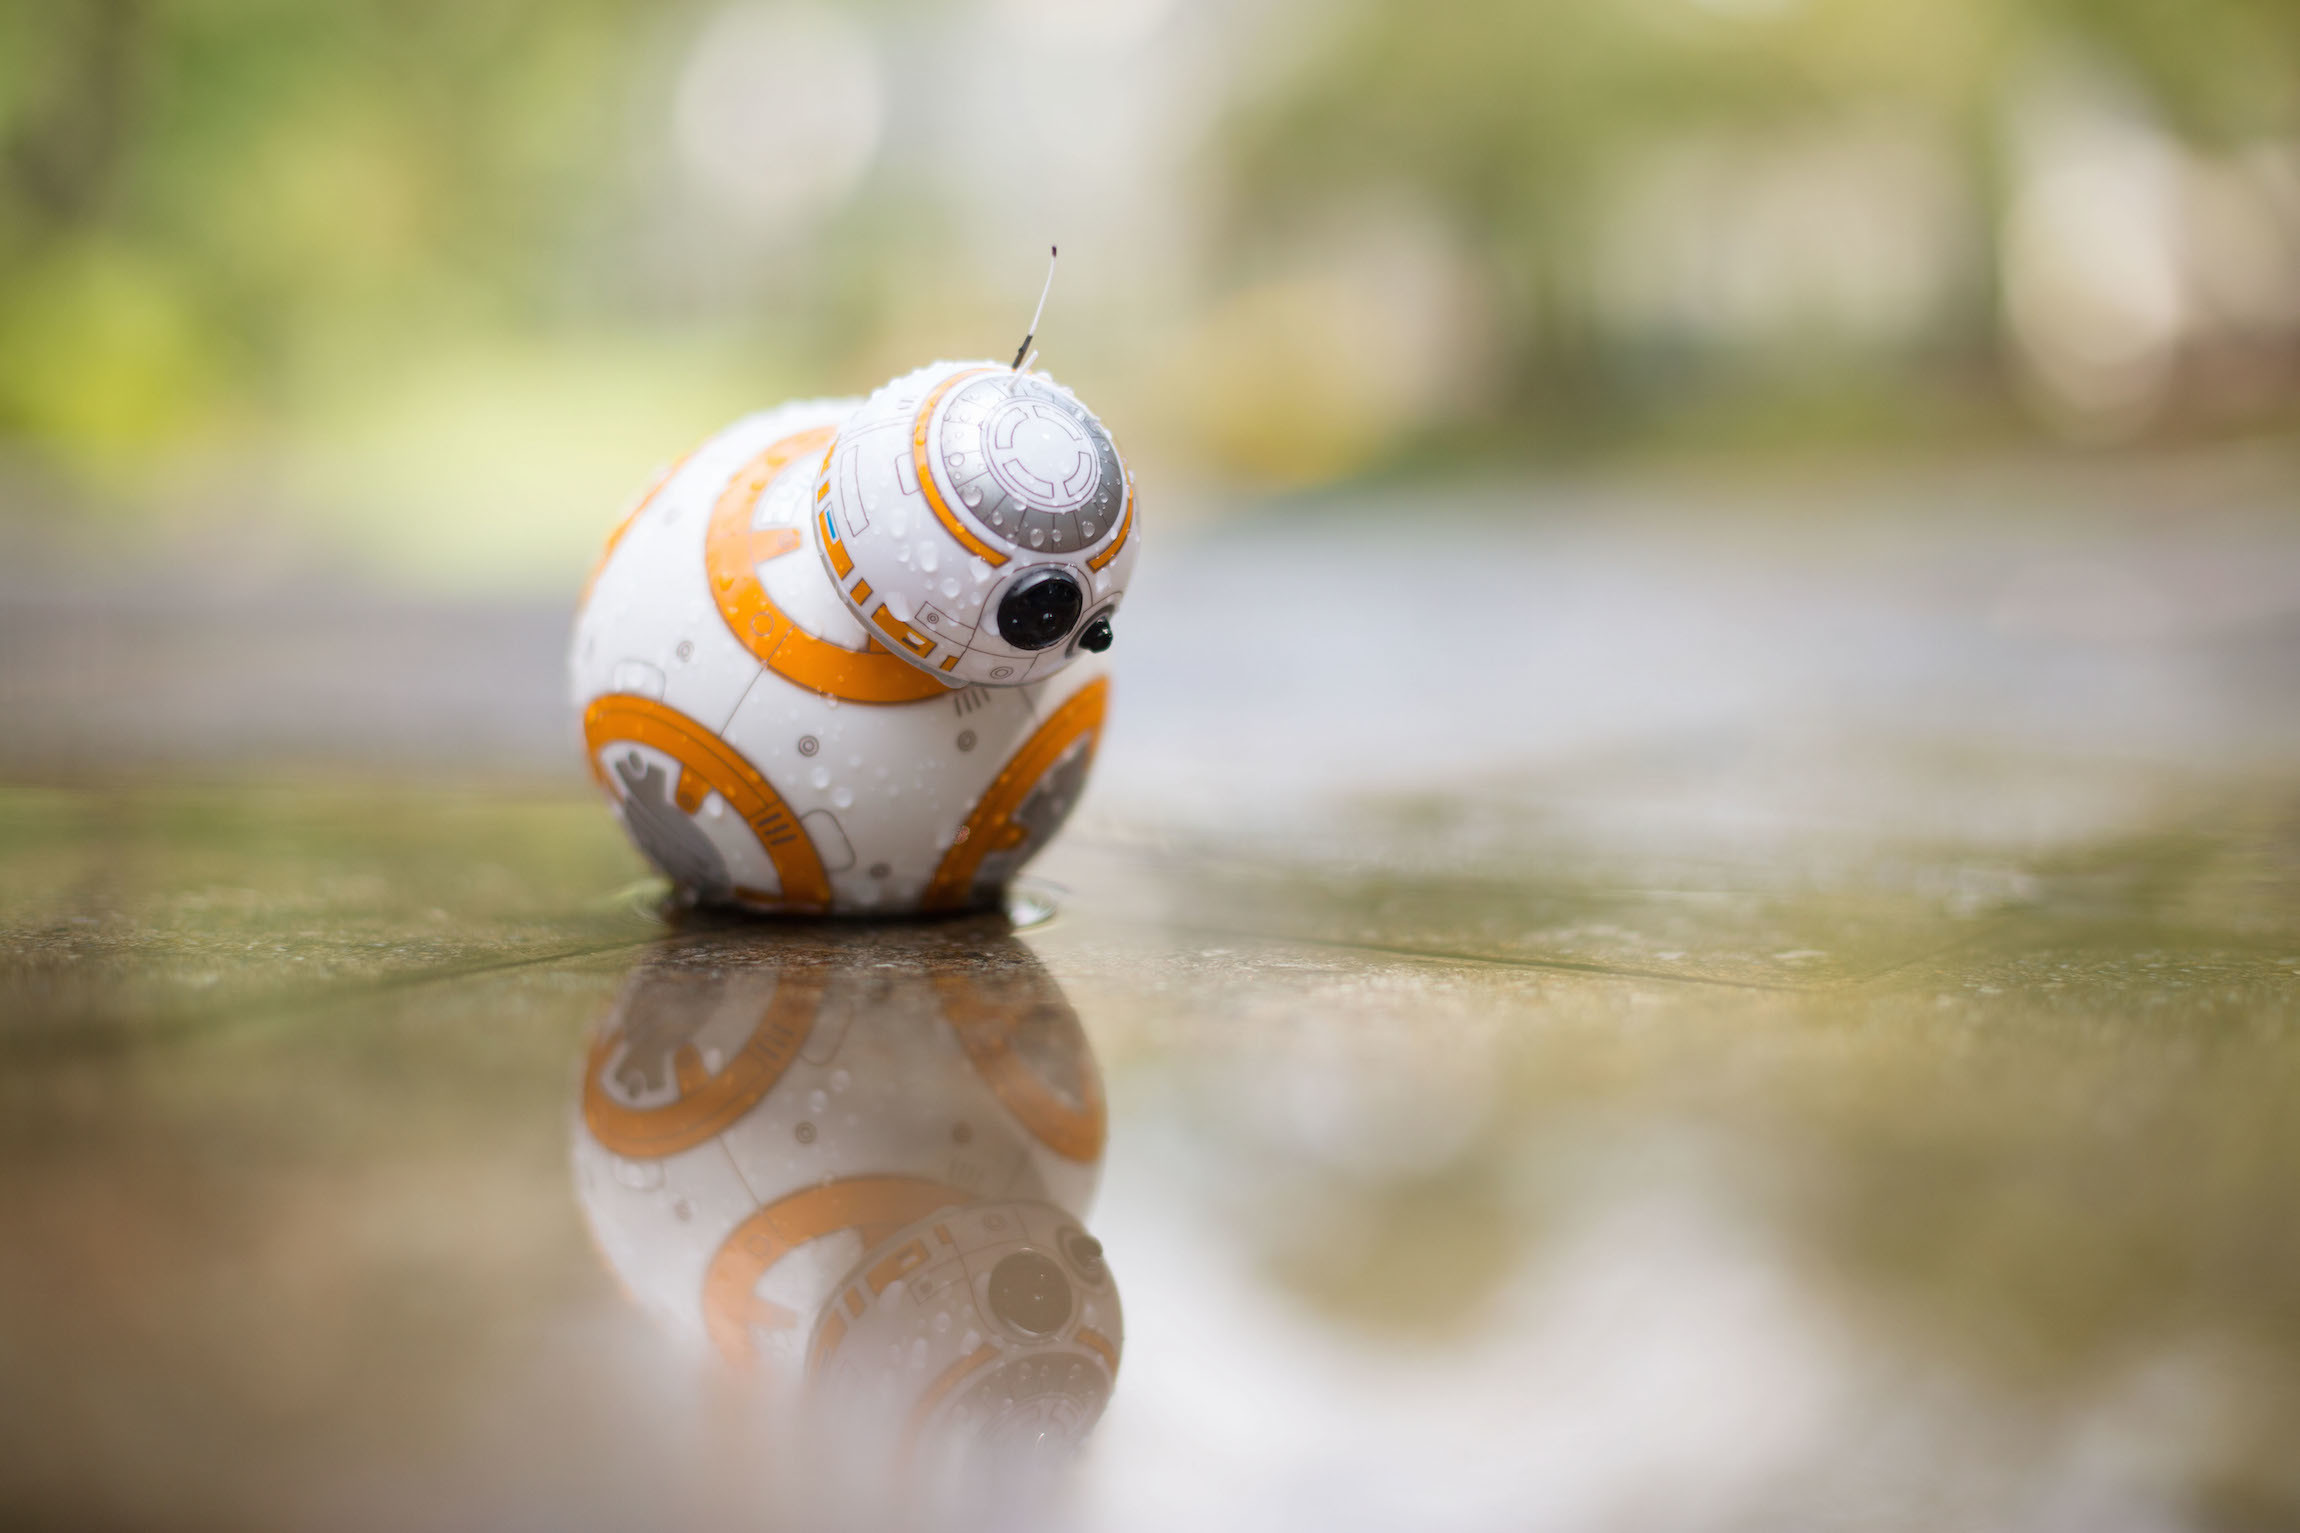 Explore Bb8 Star Wars, Star Wars Gifts, and more!